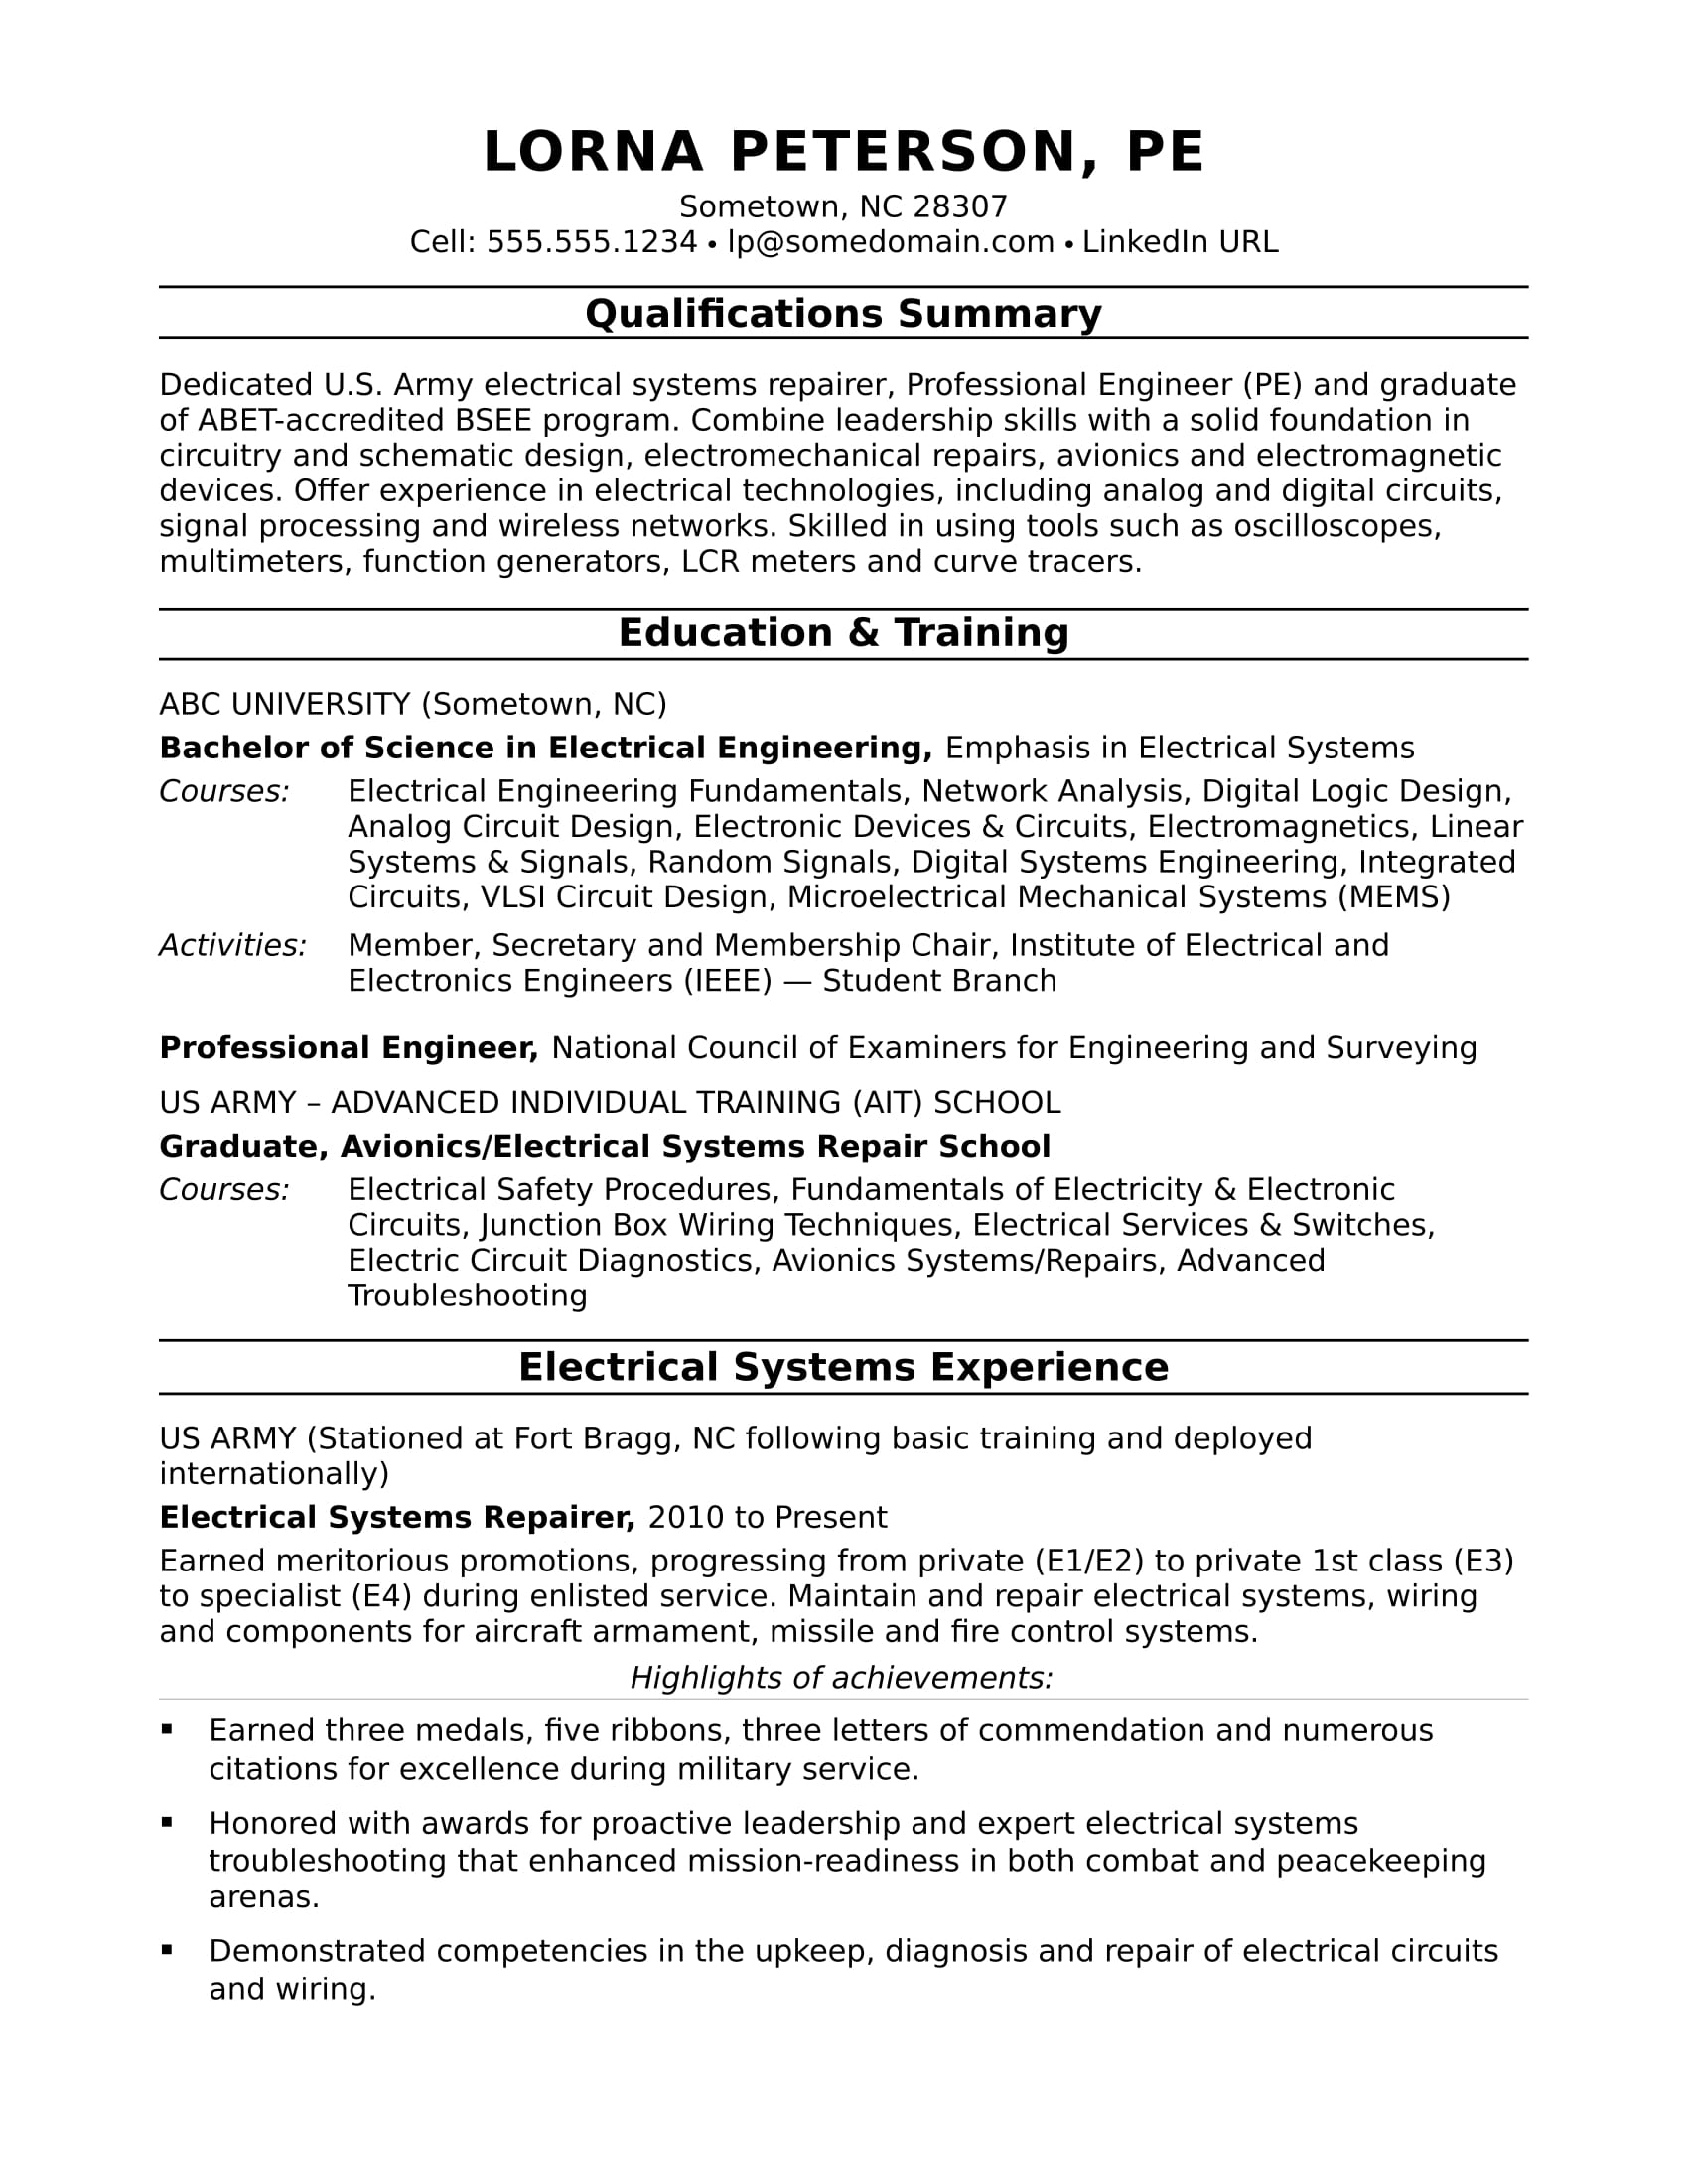 Sample Resume For A Midlevel Electrical Engineer Monster